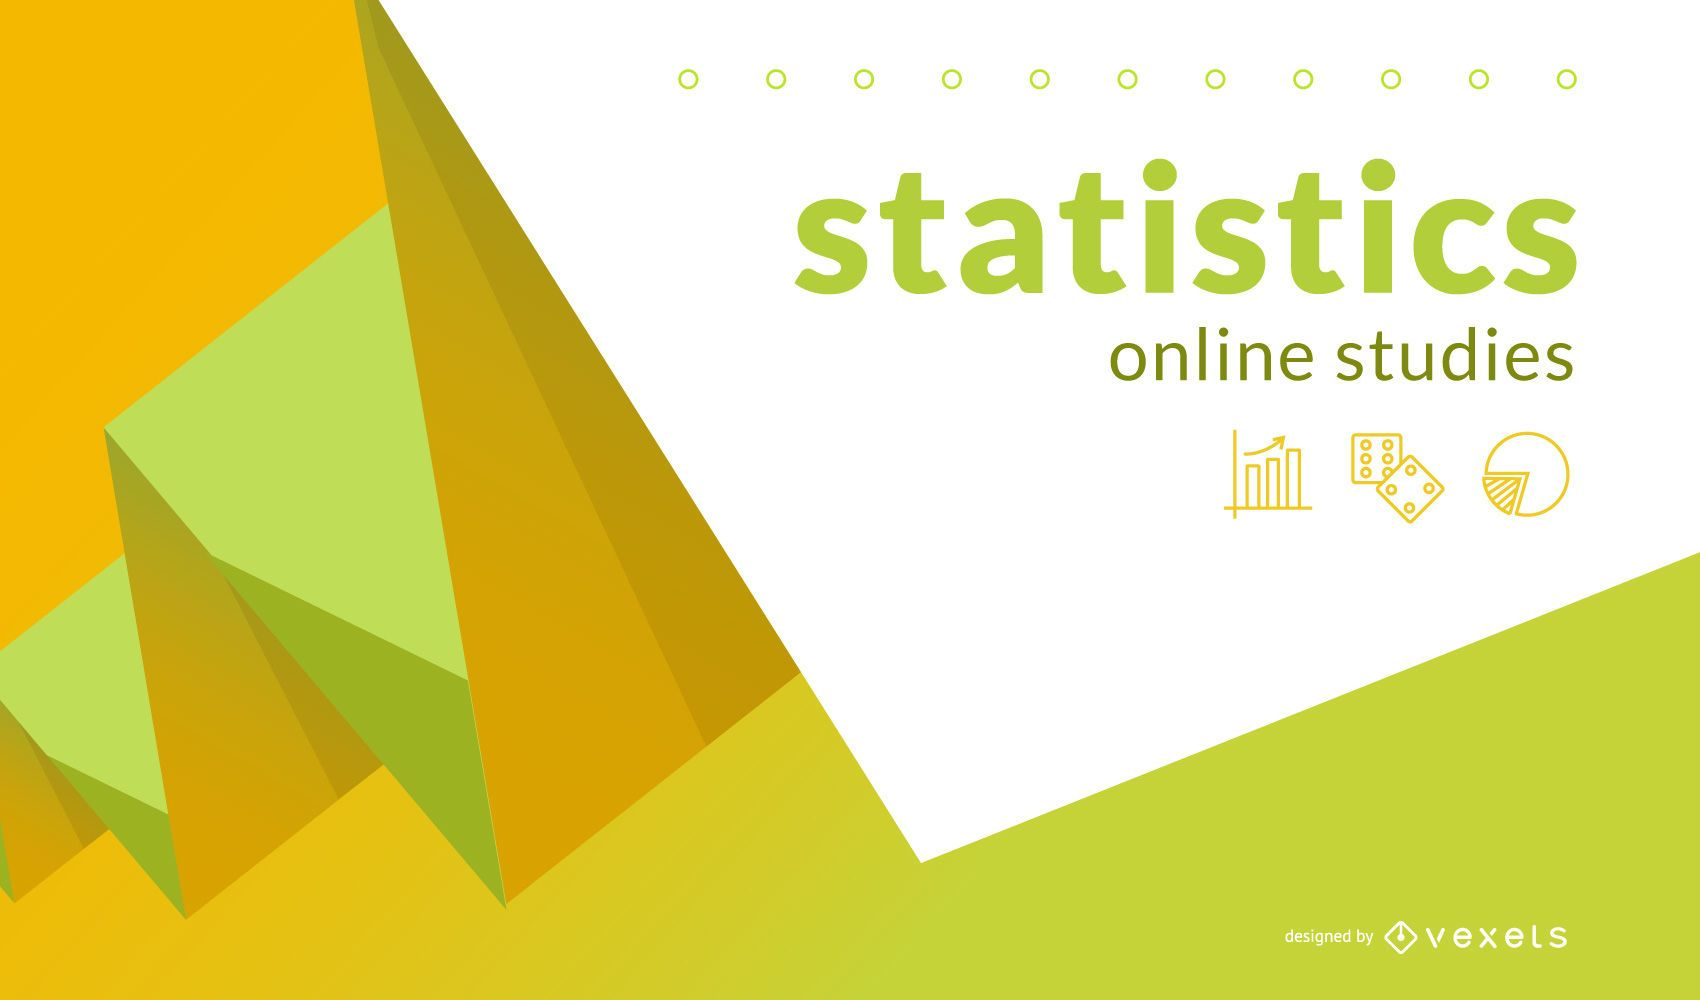 Statistics online studies abstract cover